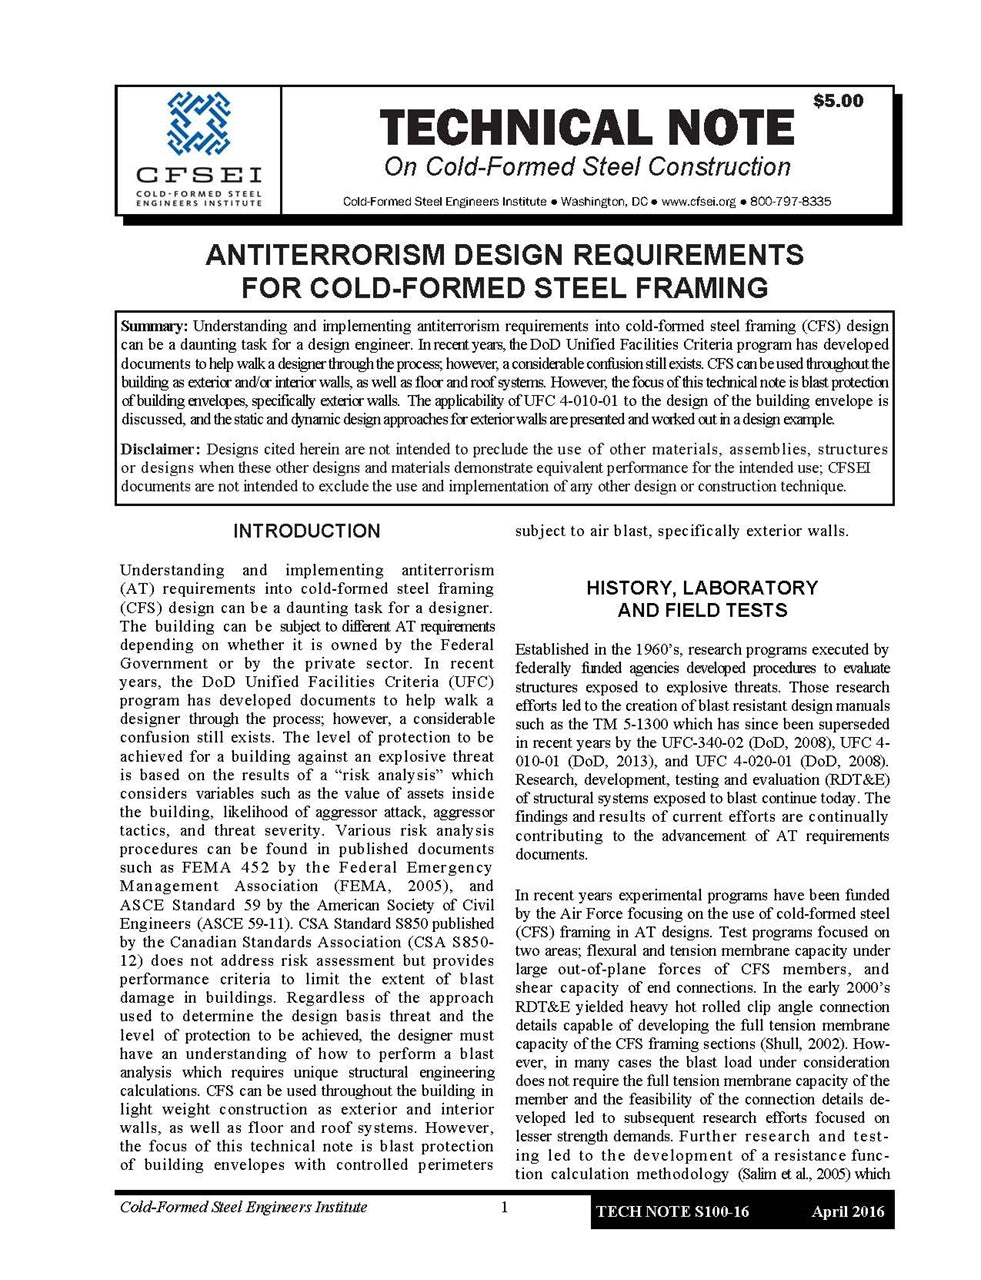 TN S100-16 – Antiterrorism Design Requirements for Cold-Formed Steel Framing